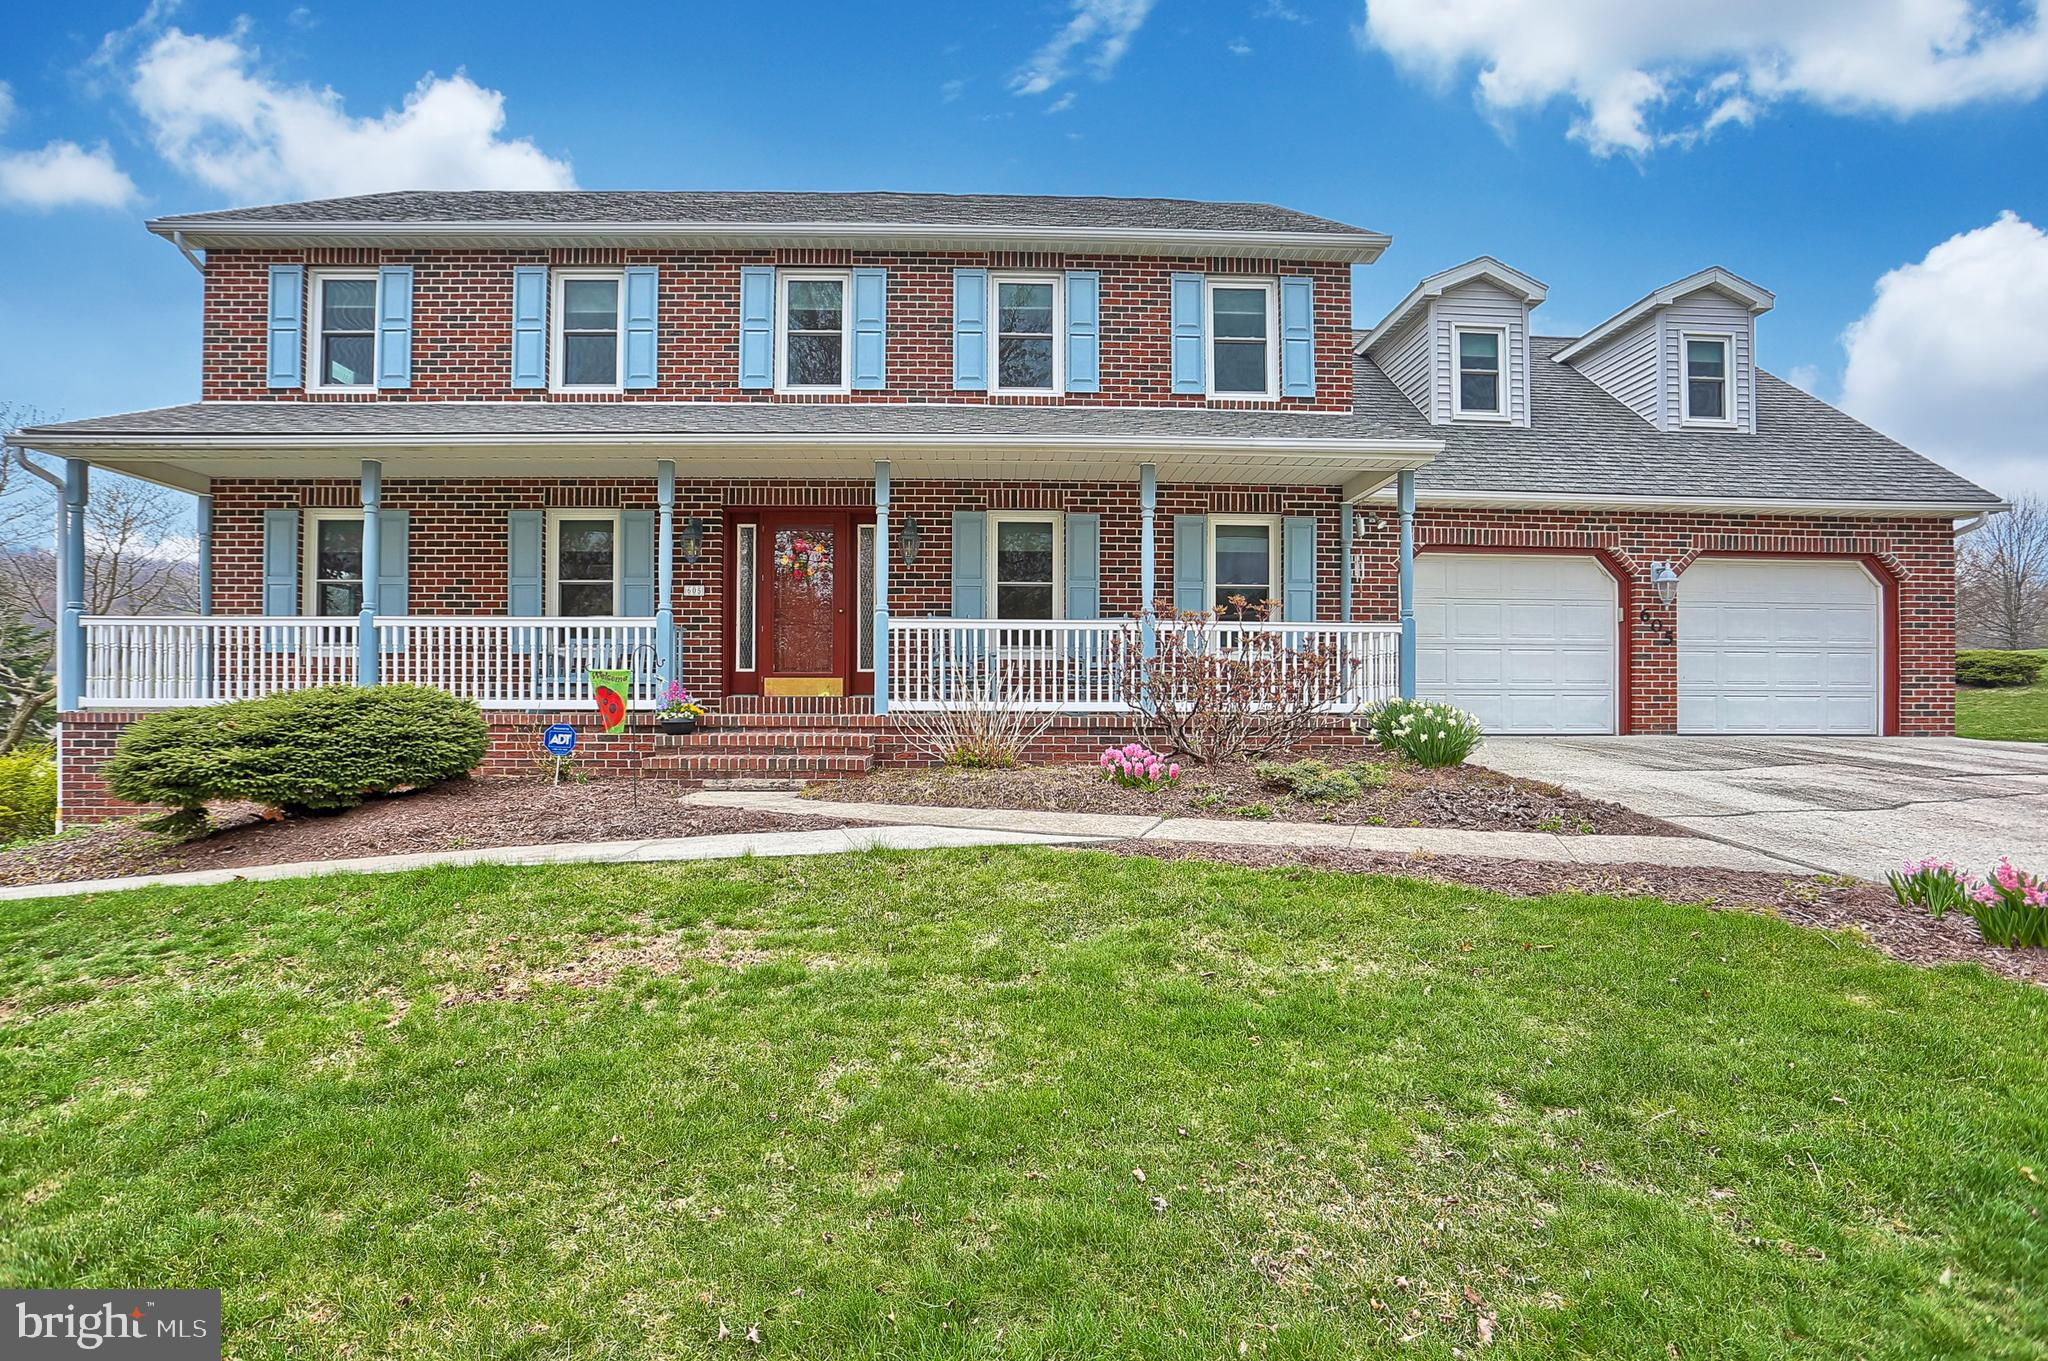 605 ANTLER ROAD, LEWISBERRY, PA 17339